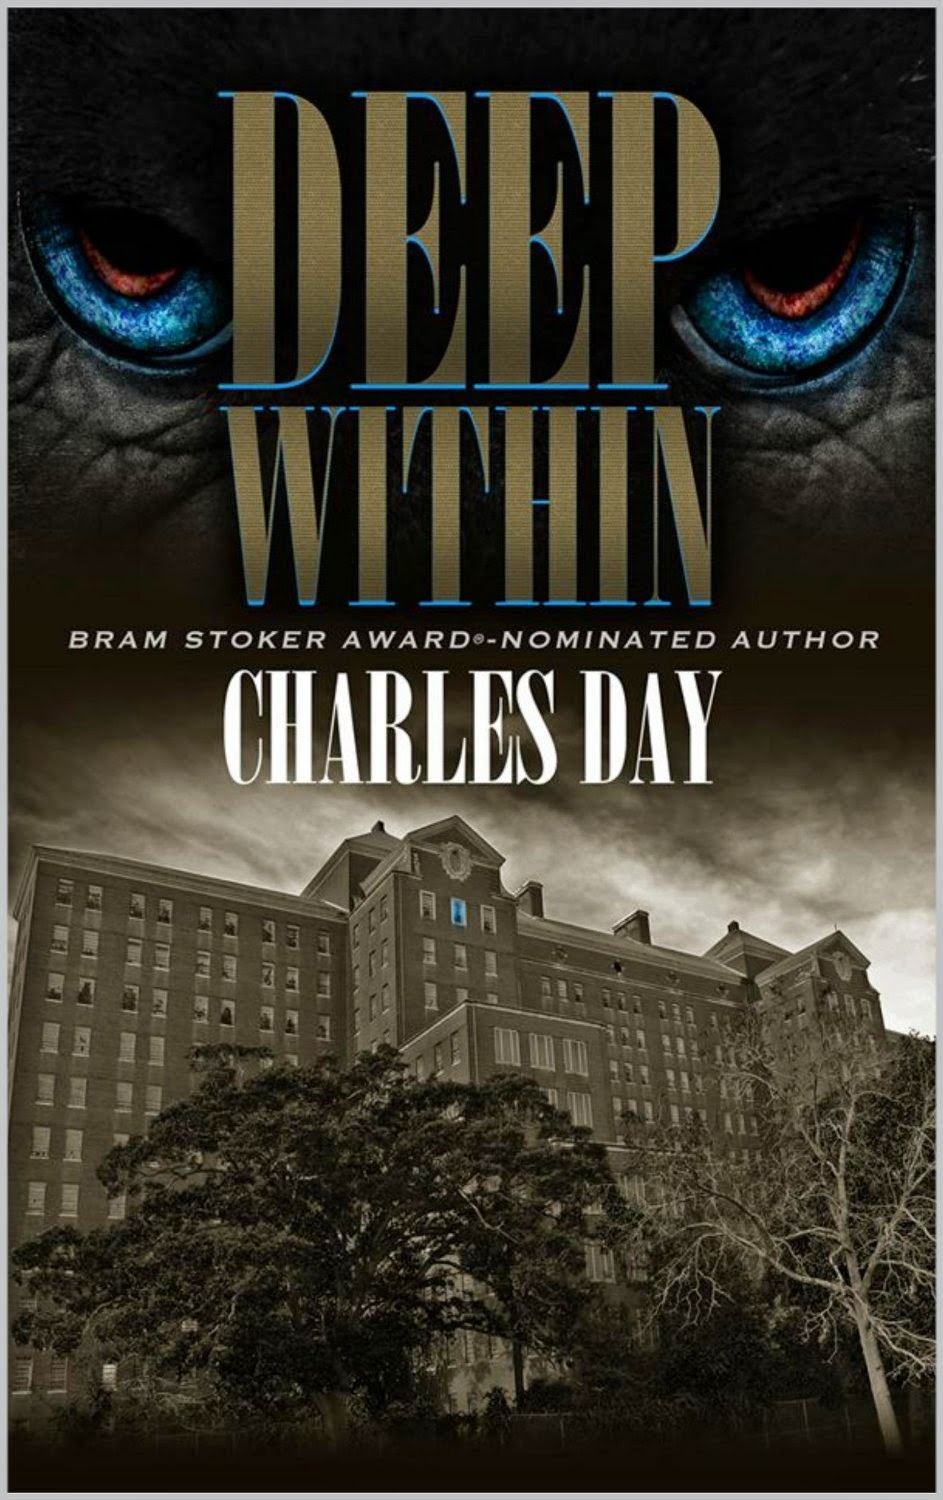 http://www.amazon.com/Deep-Within-Charles-Day-ebook/dp/B00GCEAC9M/ref=as_sl_pc_ss_til?tag=httpesselprbl-20&linkCode=w01&linkId=BOIAI6HMXE3BCKDB&creativeASIN=B00GCEAC9M